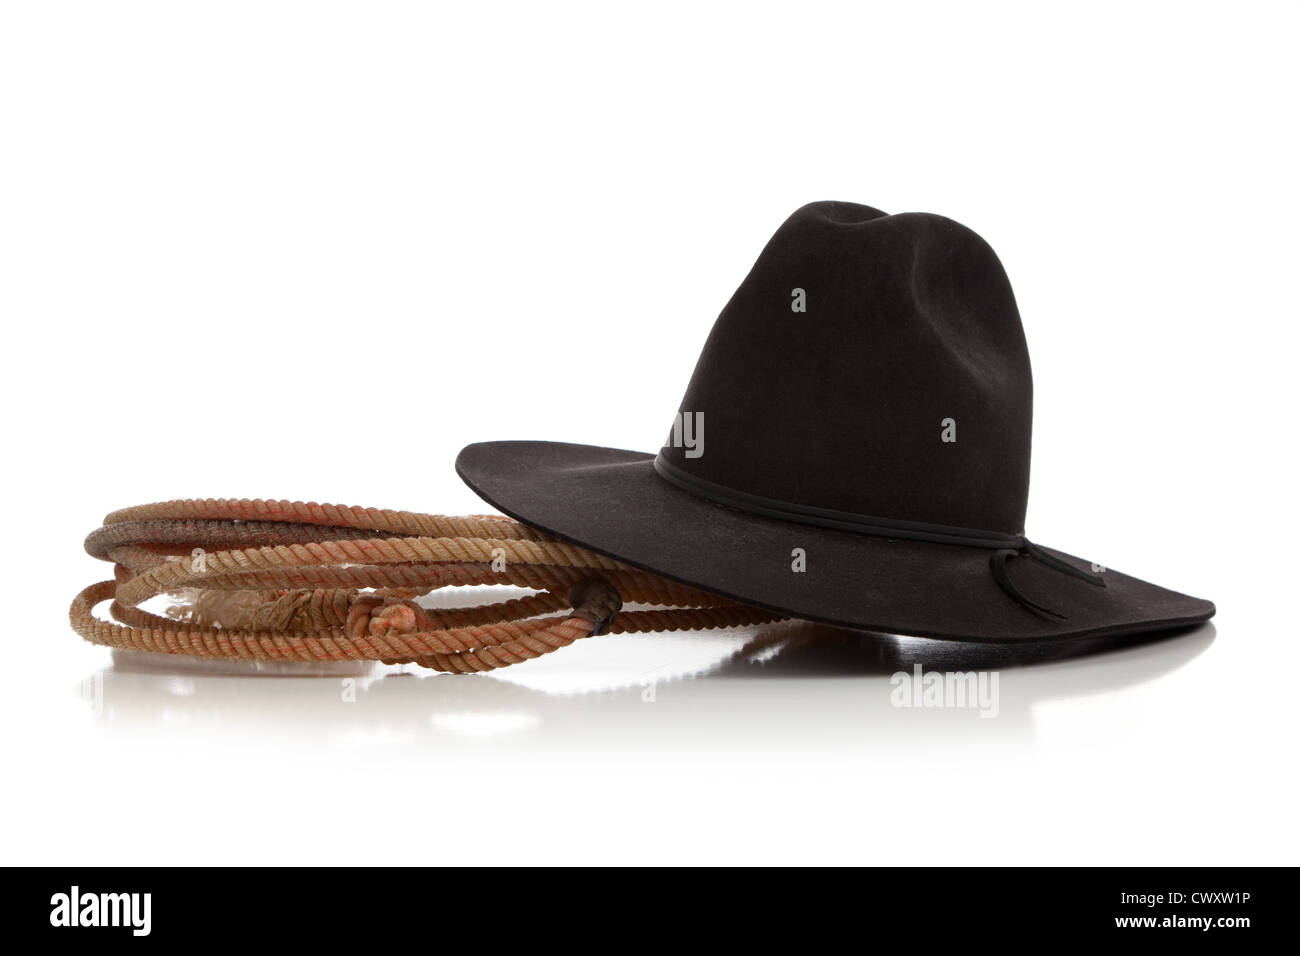 A lasso and black felt cowboy hat on a white background - Stock Image